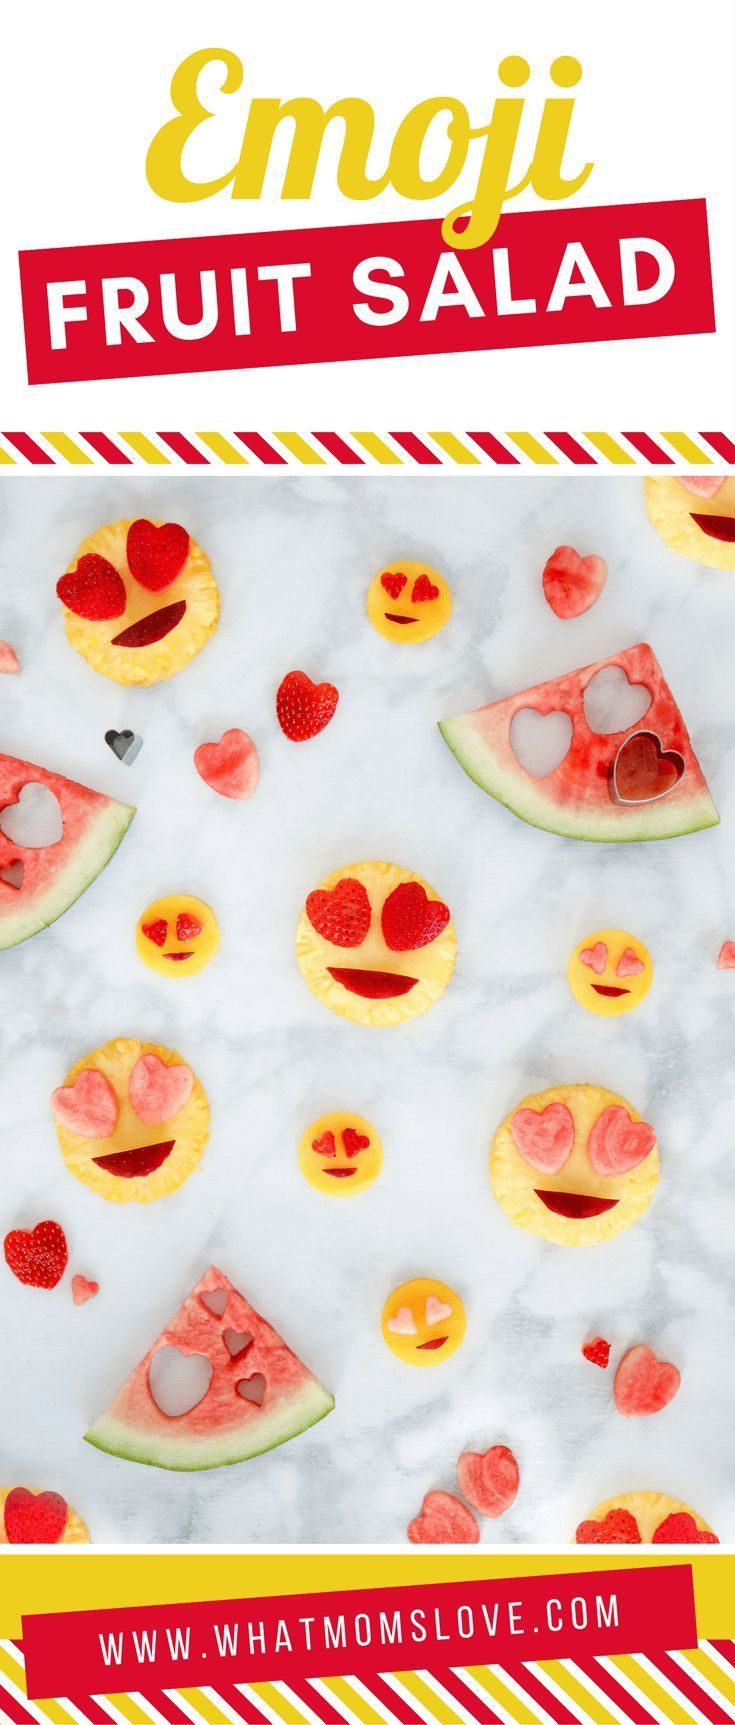 Emoji Party Ideas | Fun DIY food for an Emoji themed birthday party or a simple, no candy healthy Valentines Day snack for kids | Valentines day food ideas for clean eating families - great for school instead of a sweet treat, simply use heart shape cookie cutters and fruit!